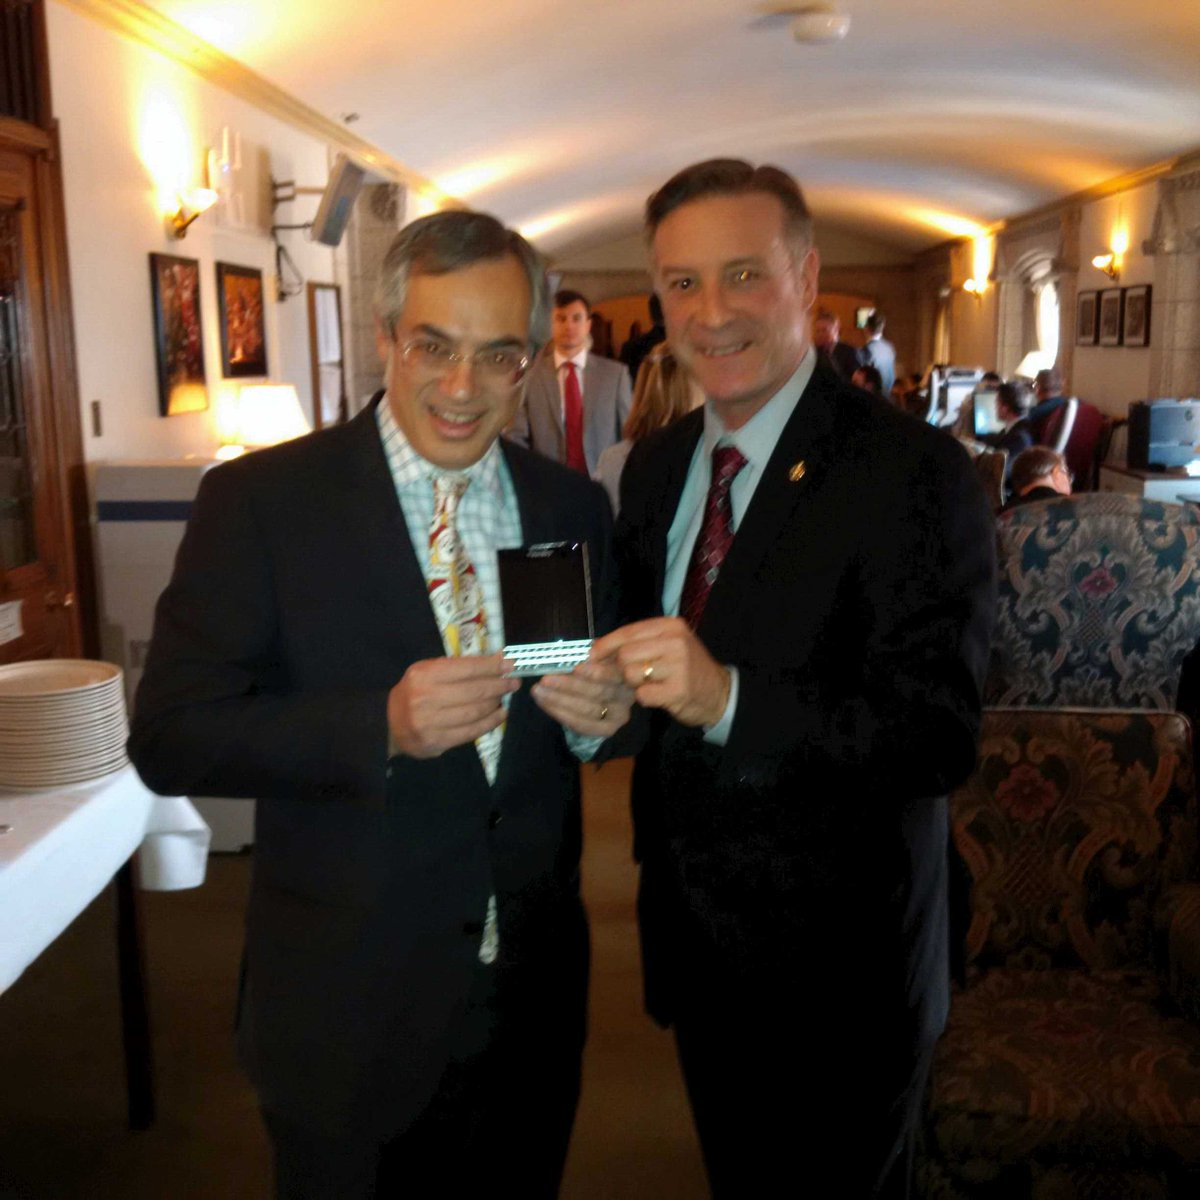 With @TonyclementCPC, President of the Treasury Board, posing with his new @BlackBerry Passport. Says he loves it! http://t.co/n6sEx3DCai